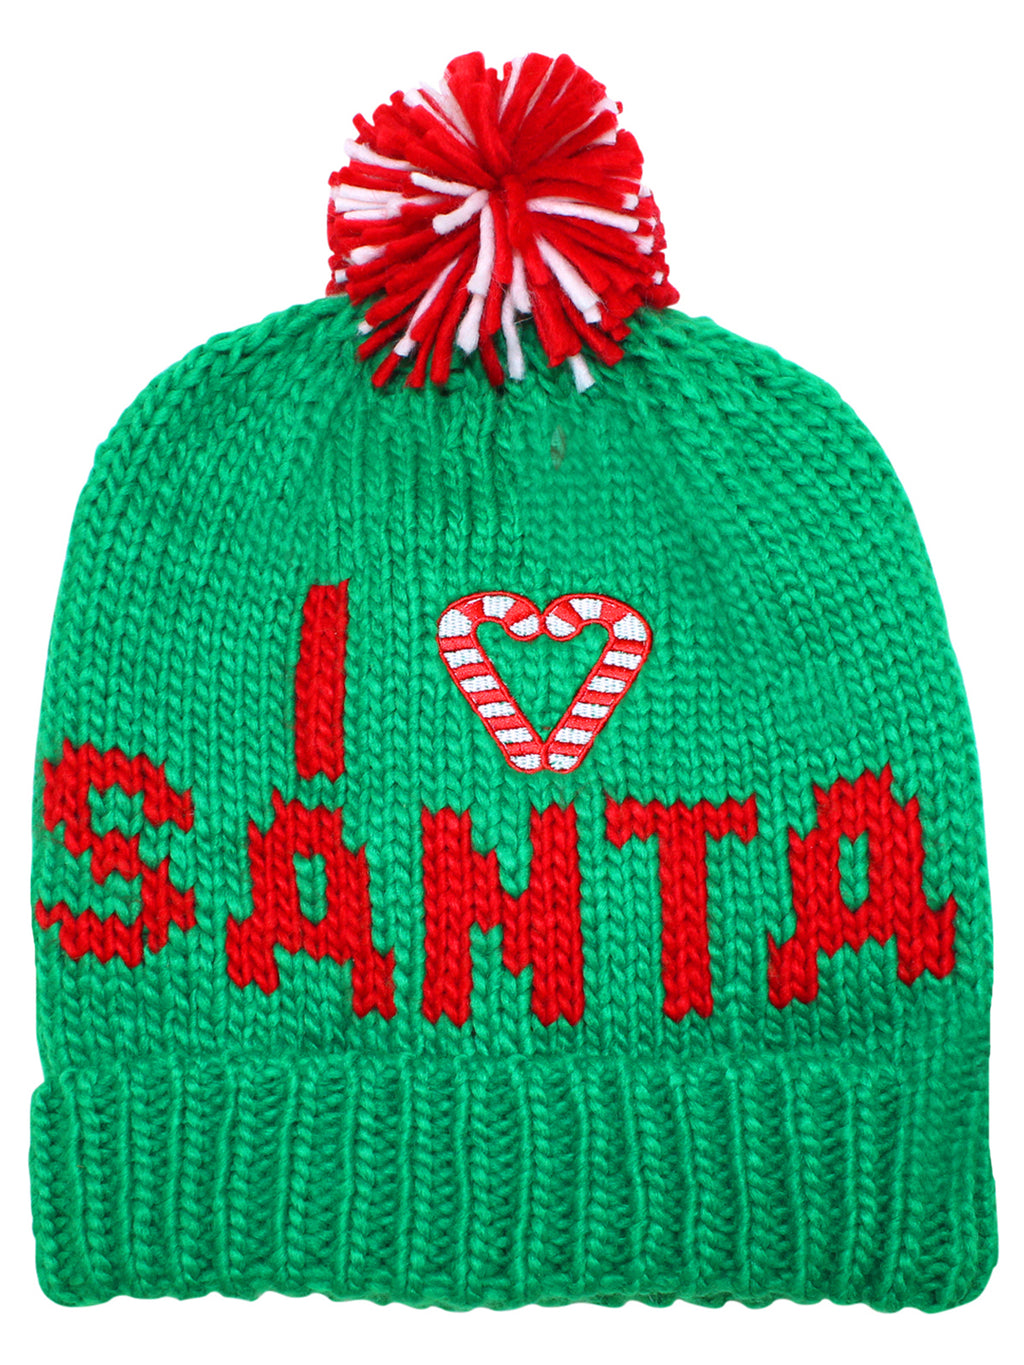 Green Knit I Love Santa Beanie Hat With Pom Pom